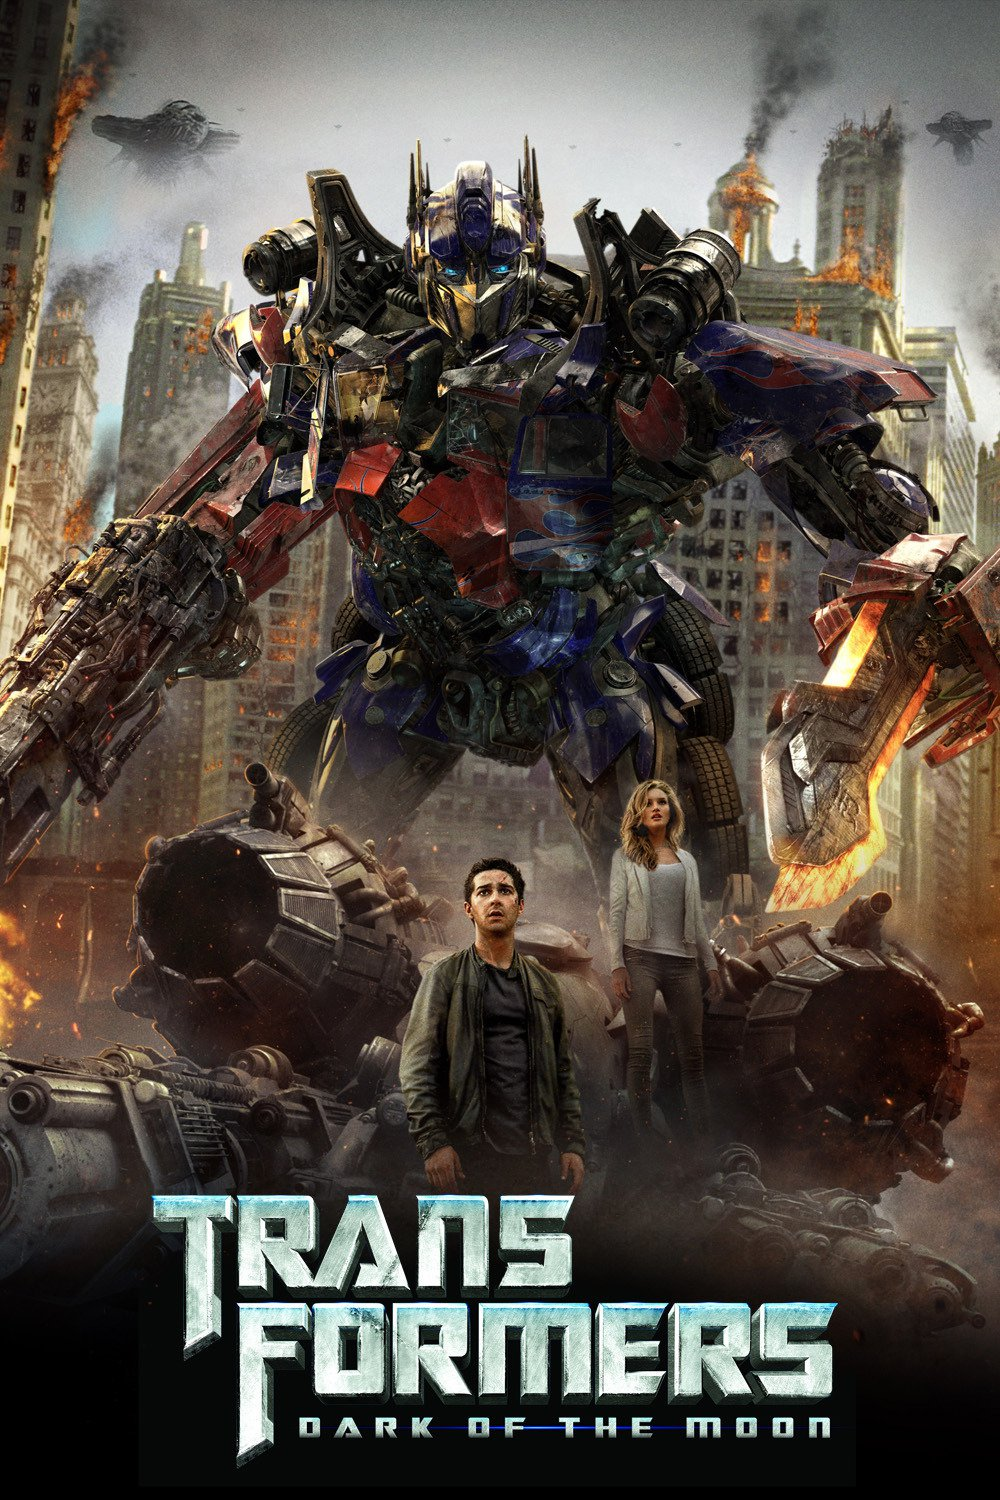 TRANSFORMERS 3 DARK OF THE MOON (2011) TAMIL DUBBED HD